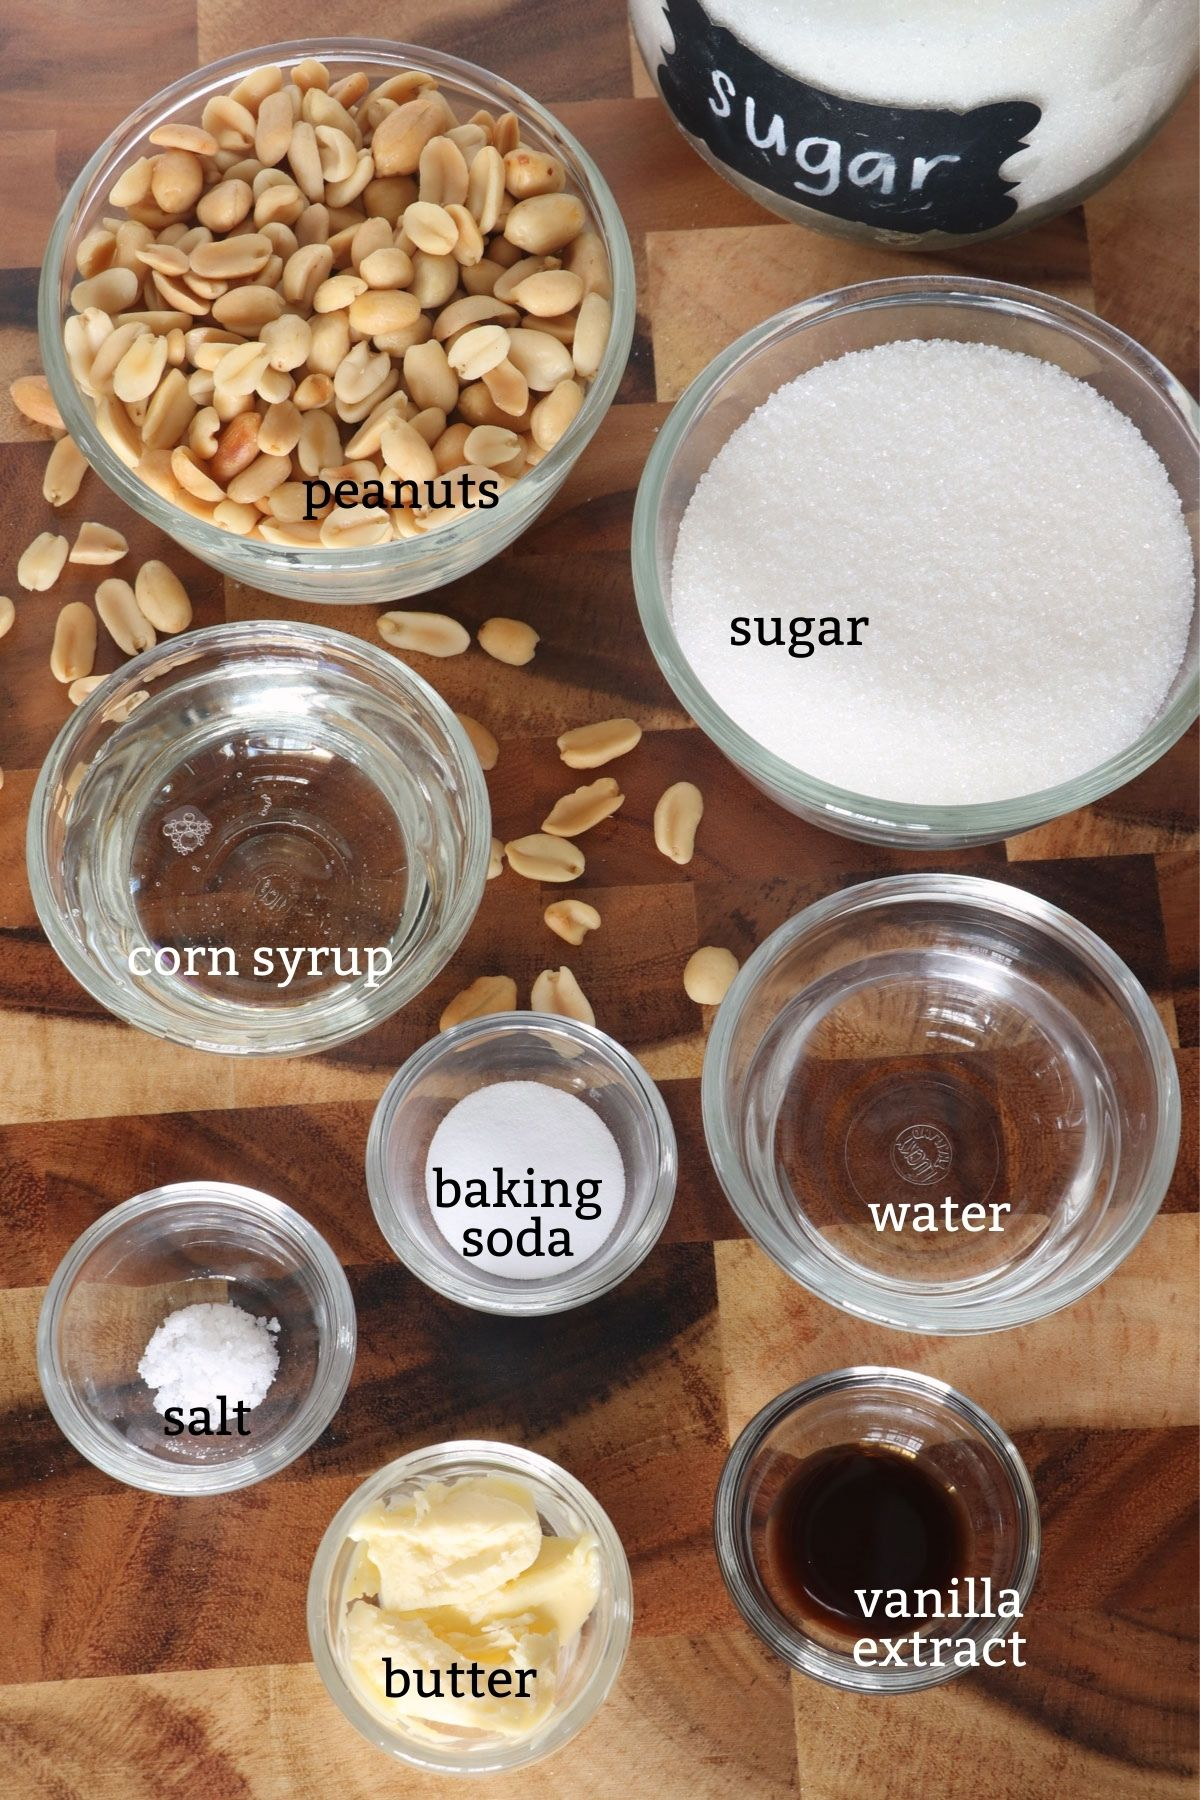 ingredients for peanut brittle: peanut, sugar, corn syrup, water, butter, salt, vanilla extract, baking soda